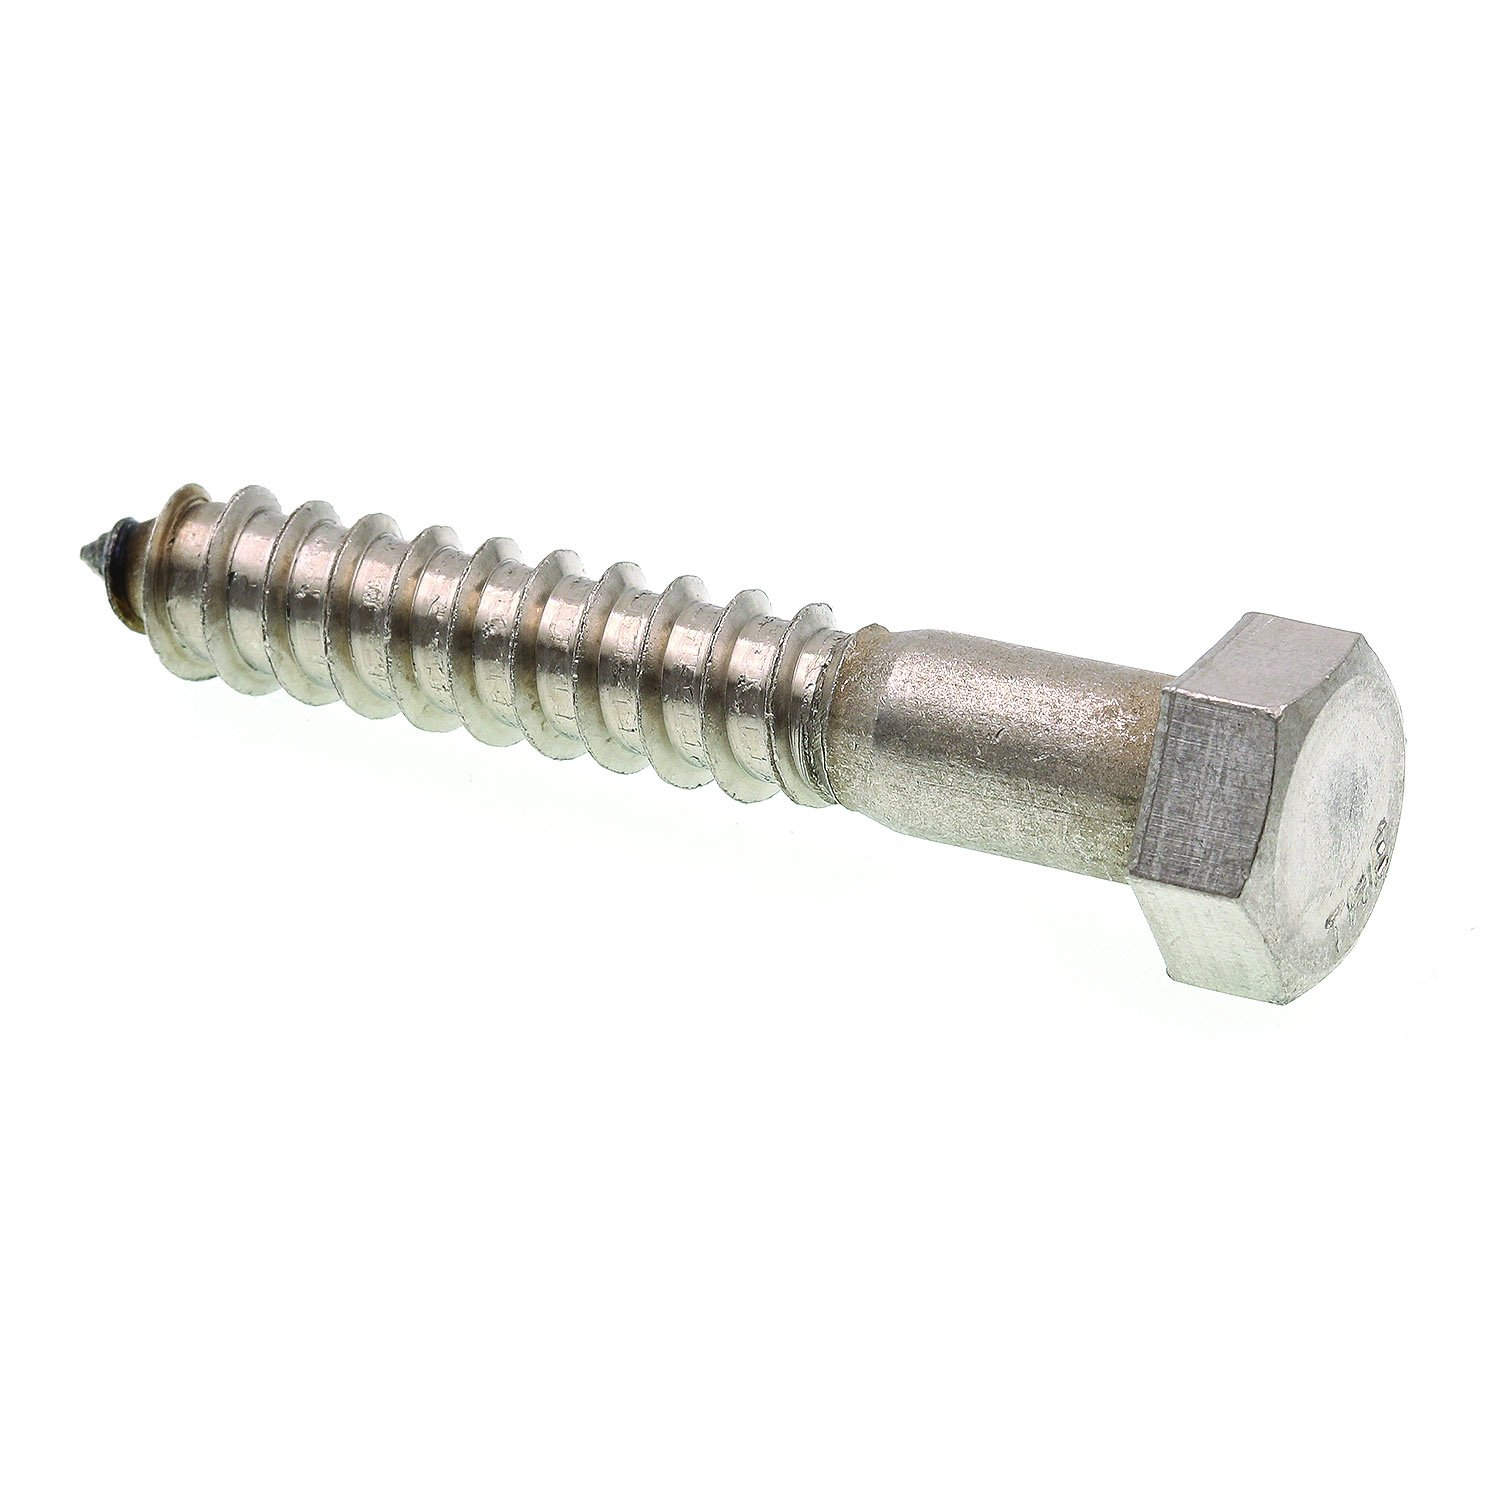 Prime-Line 9056864 Lag Screw Bolt, Hex Head, 1/2 in X 3 in, Grade 18-8 Stainless Steel, Pack of 15 by Prime-Line Products